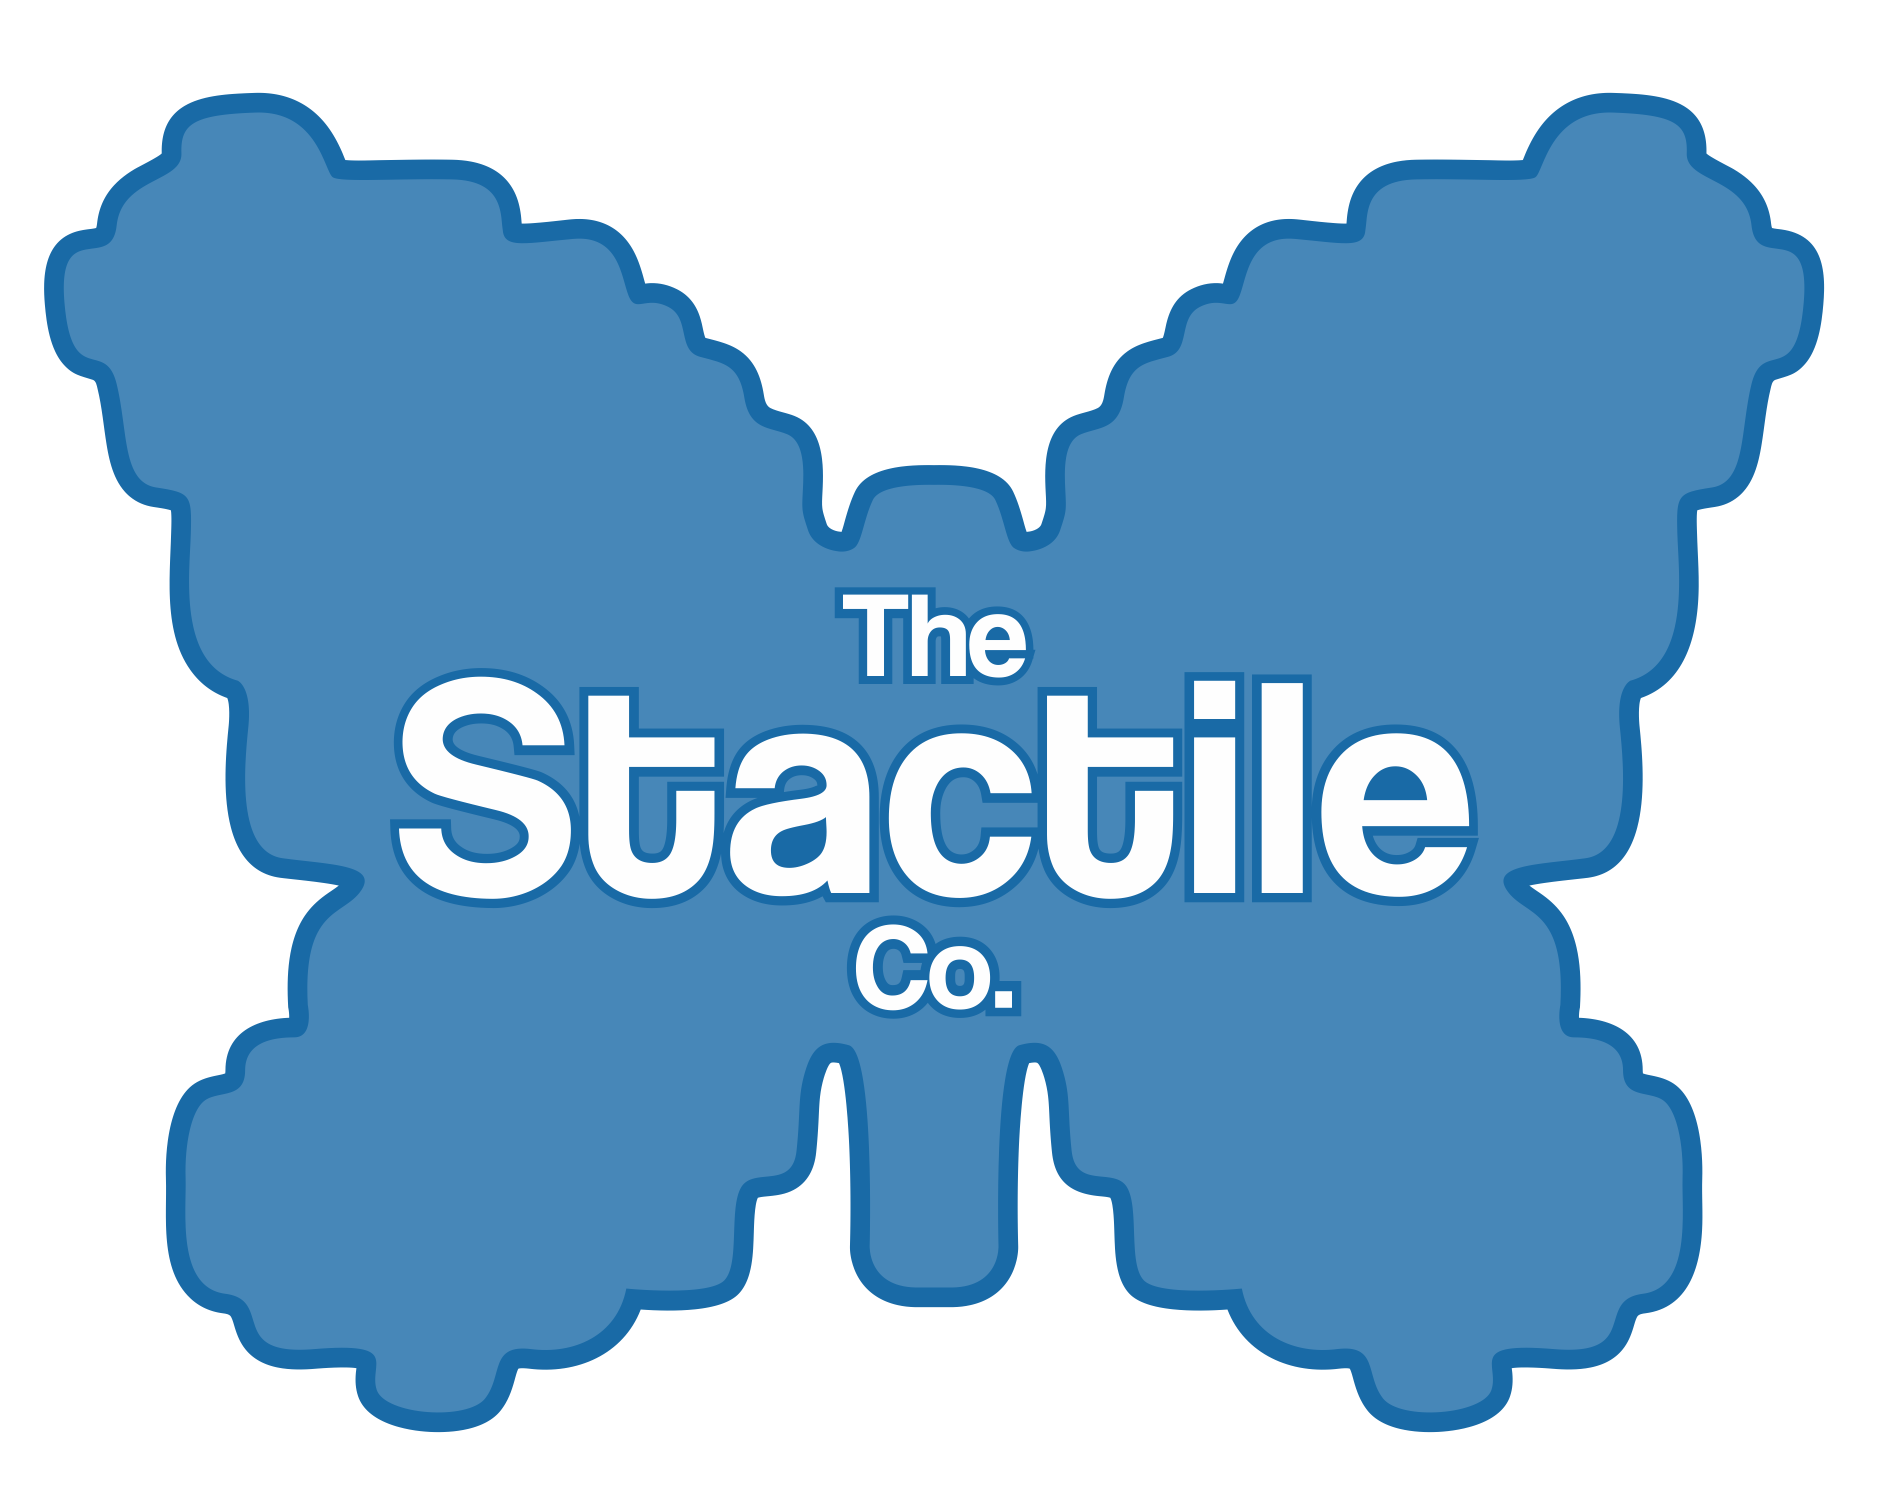 The Stactile Company